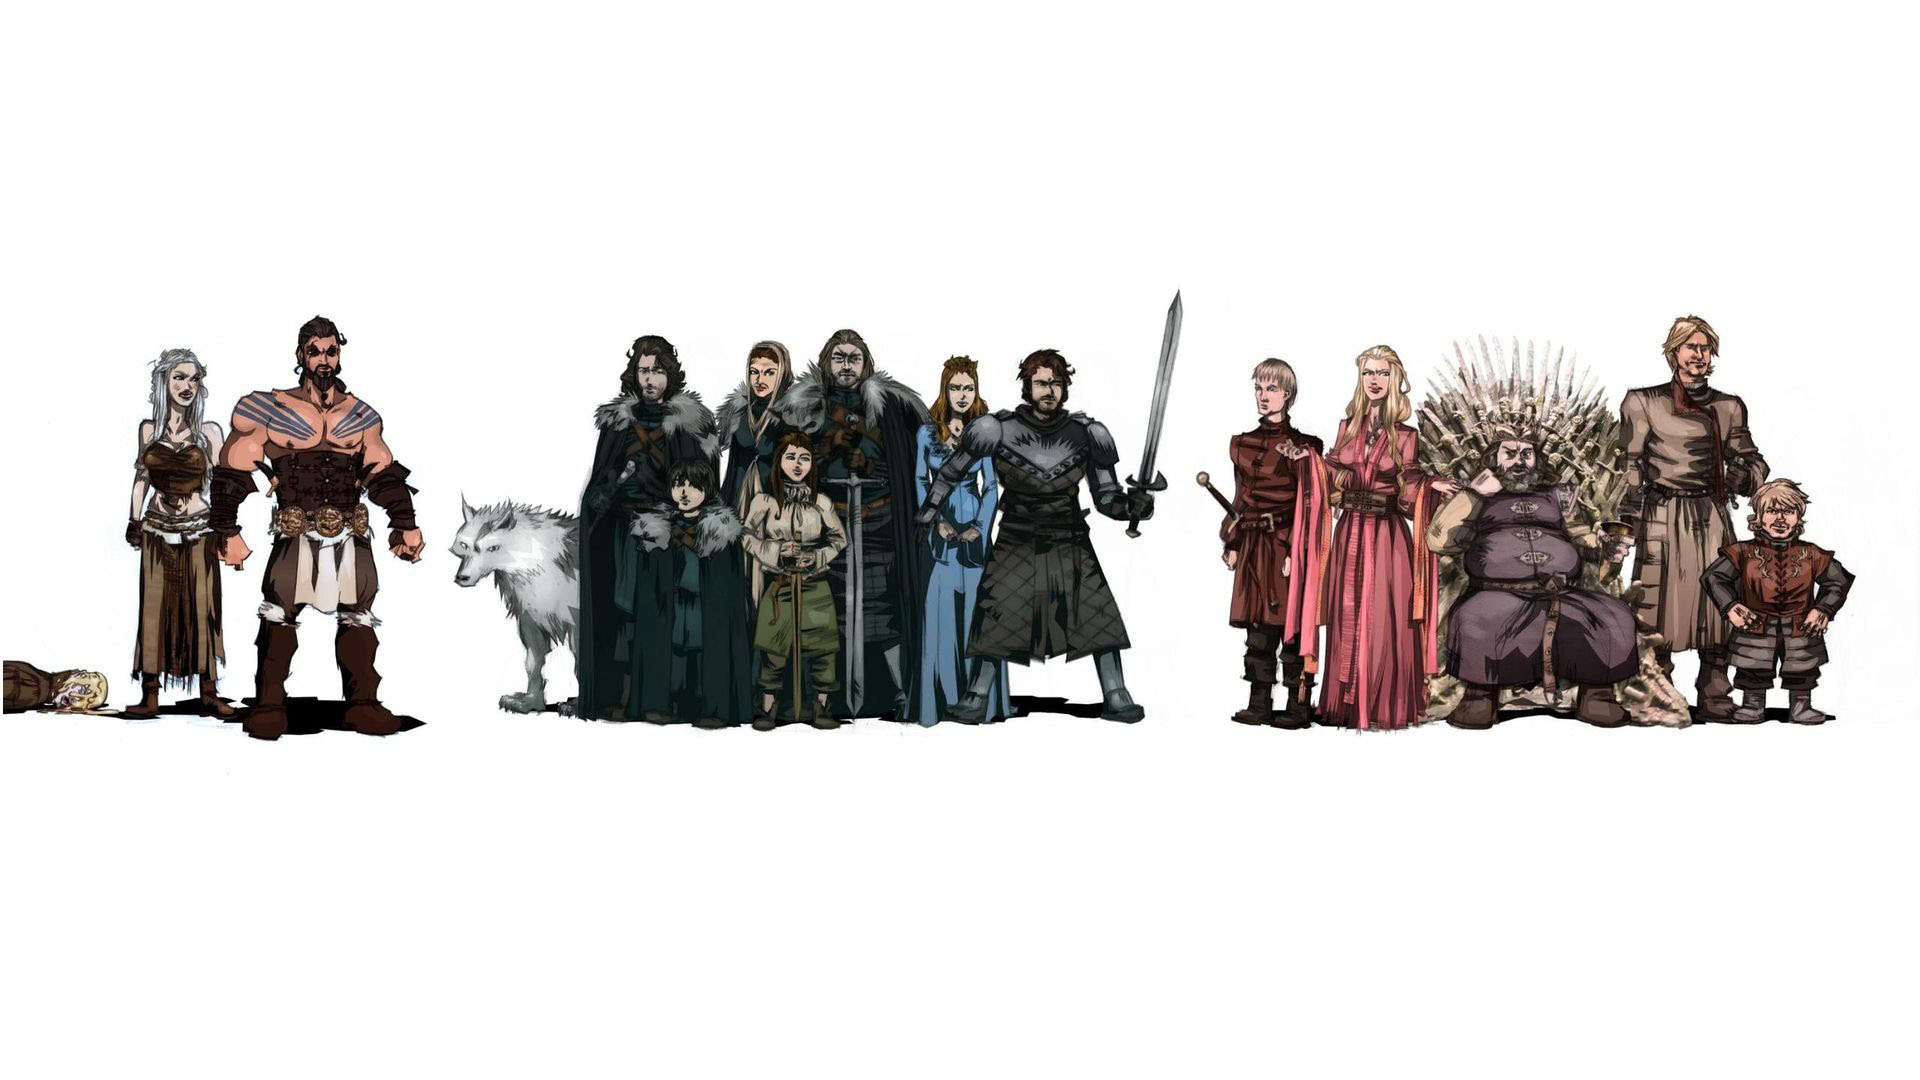 Game of Thrones Artwork Characters Wallpaper   DreamLoveWallpapers 1920x1080